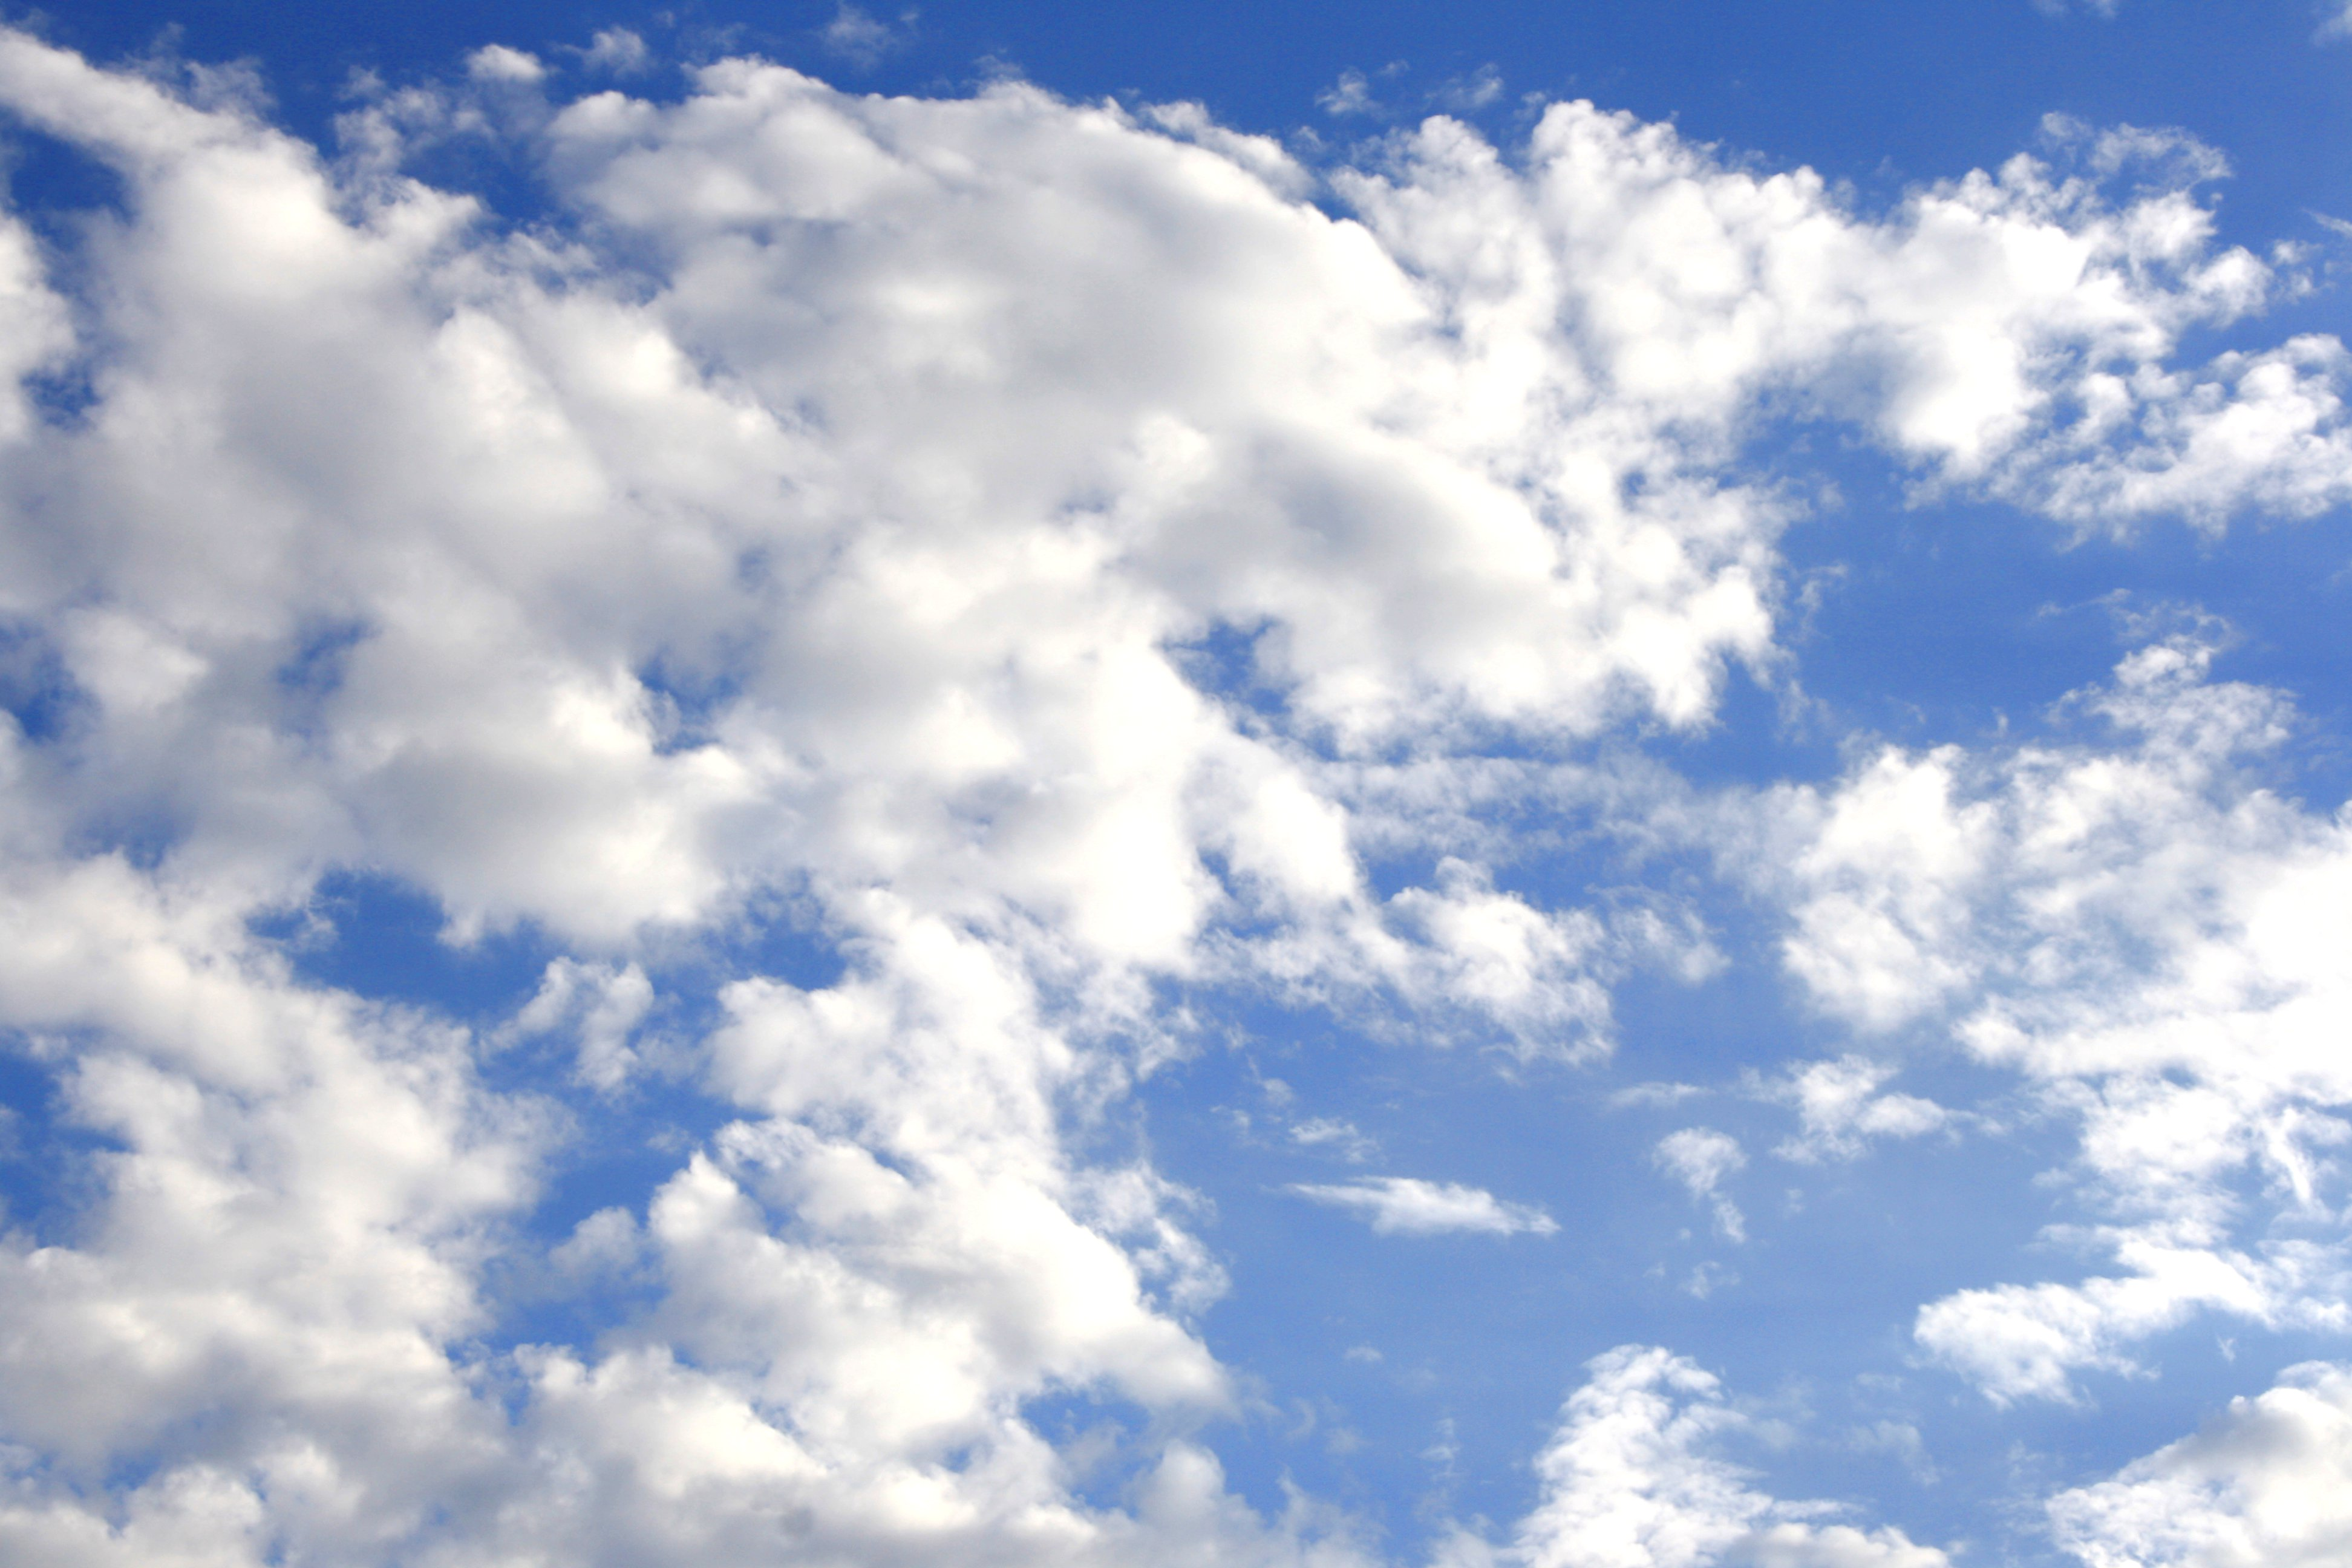 Blue Sky with Clouds Picture | Free Photograph | Photos Public Domain